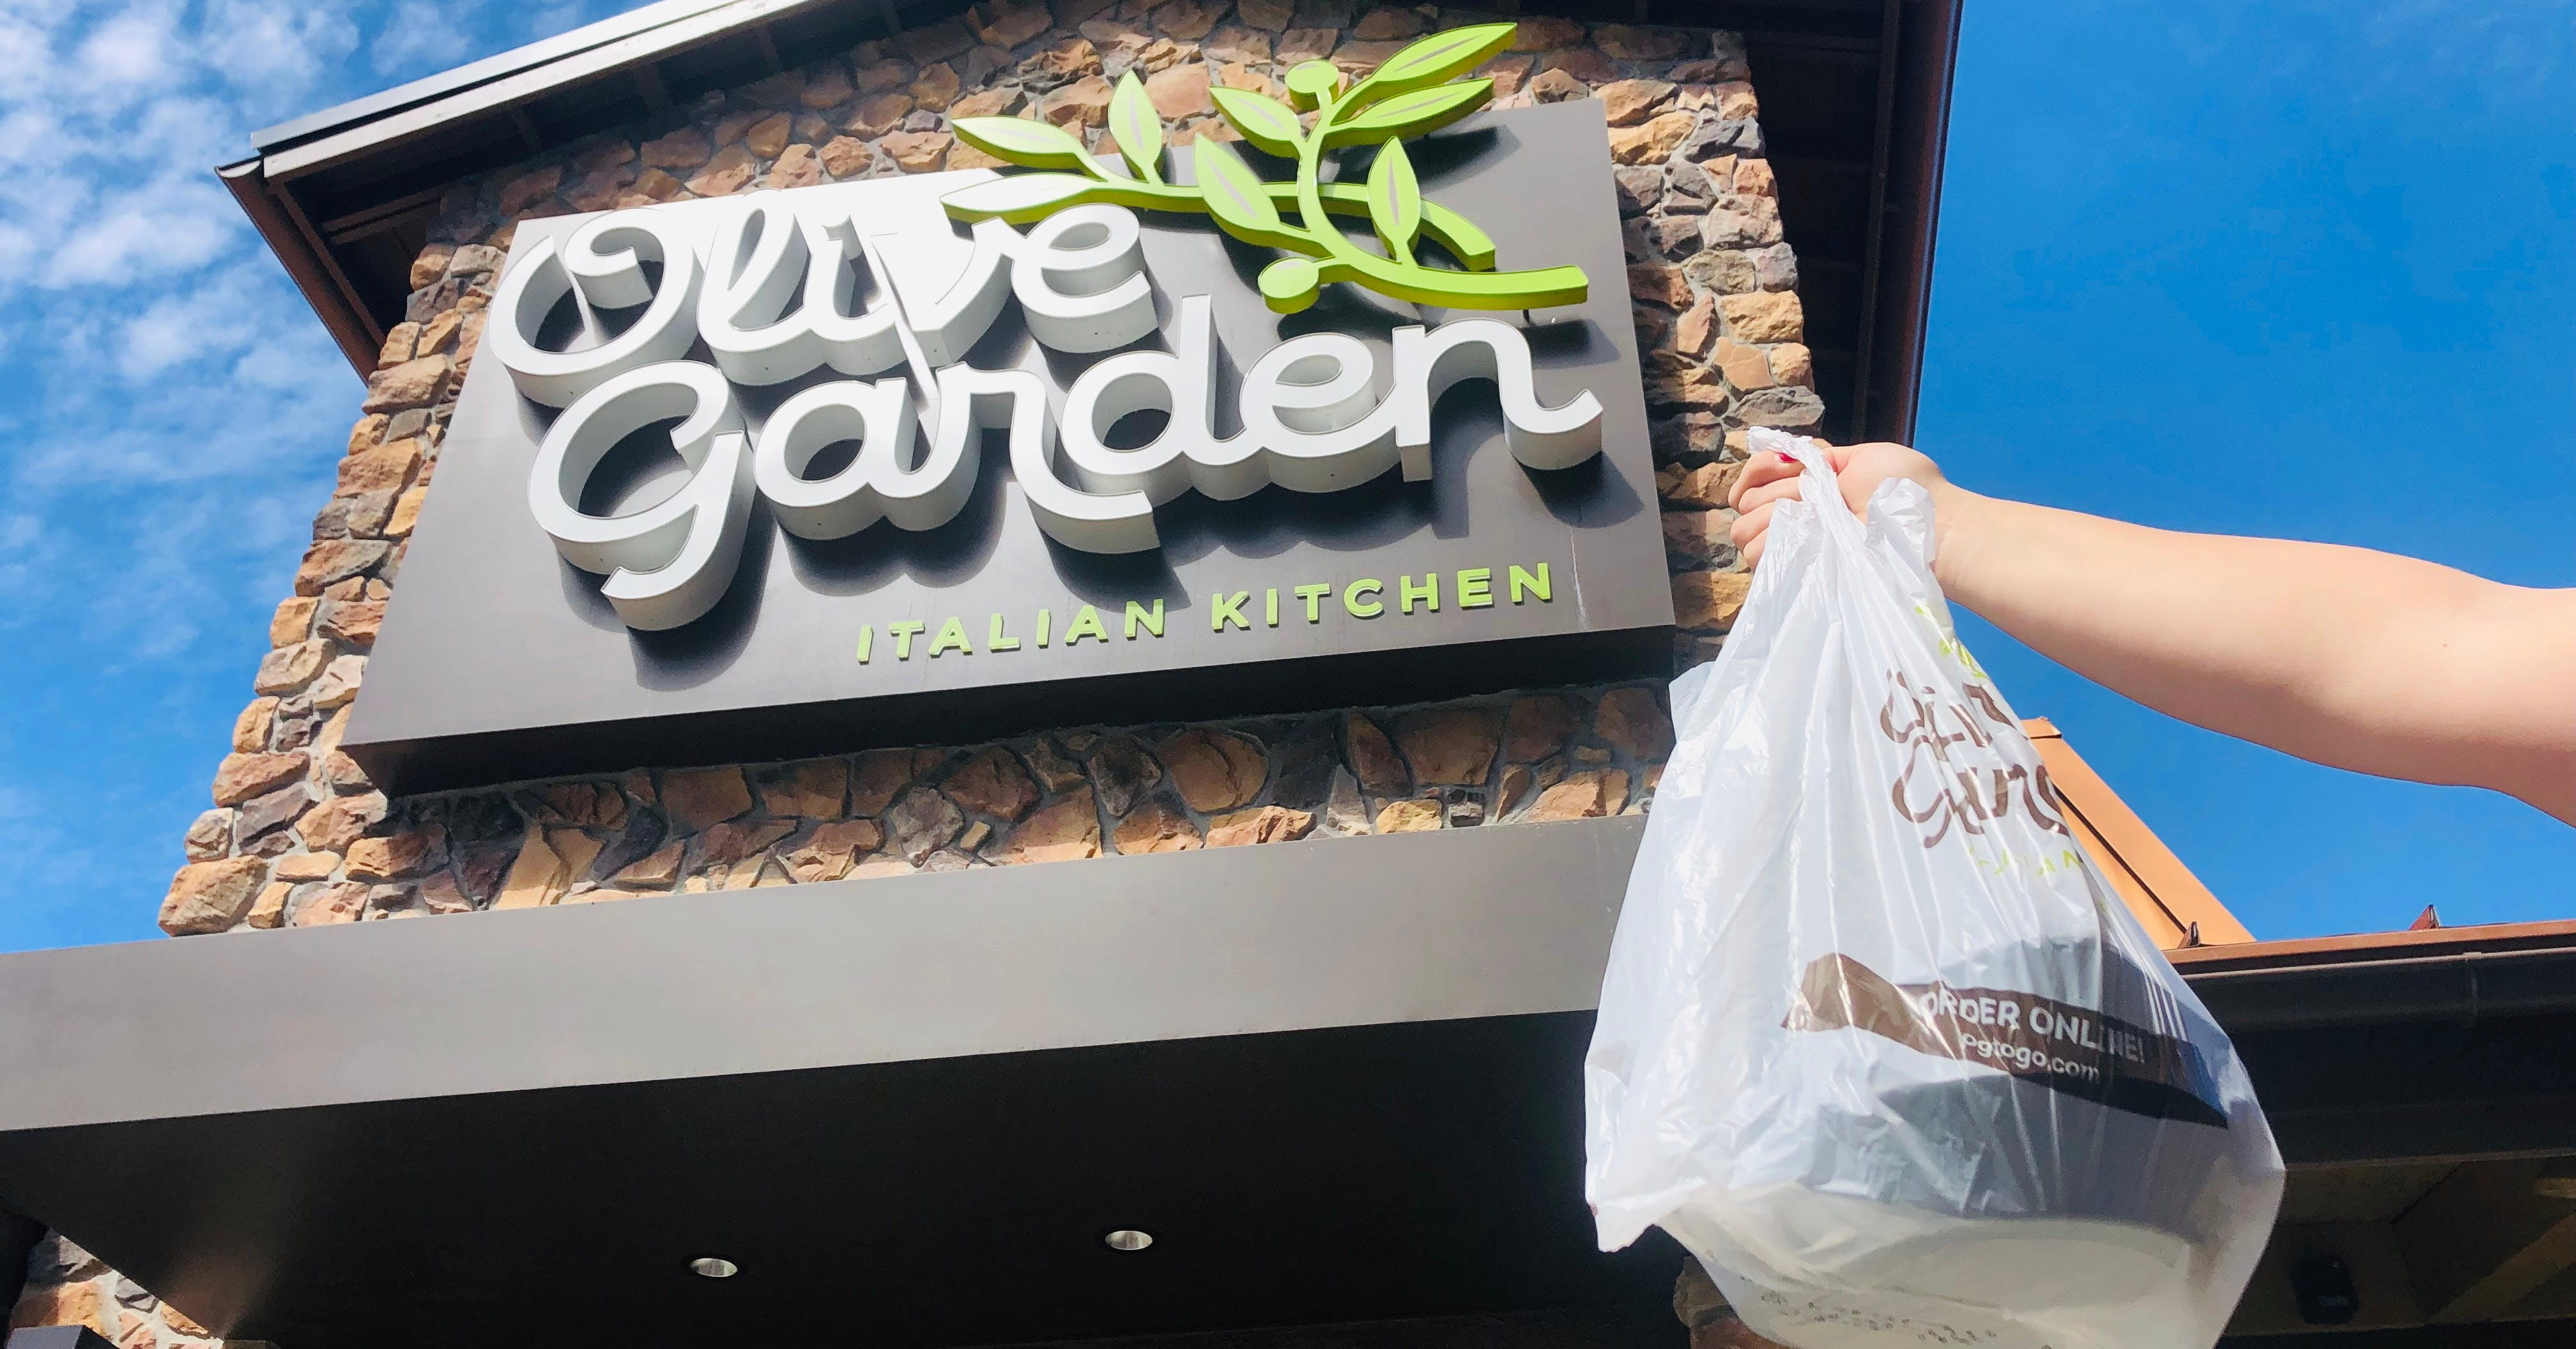 25 Olive Garden Secrets From Your Server That Ll Save You Serious Cash The Krazy Coupon Lady